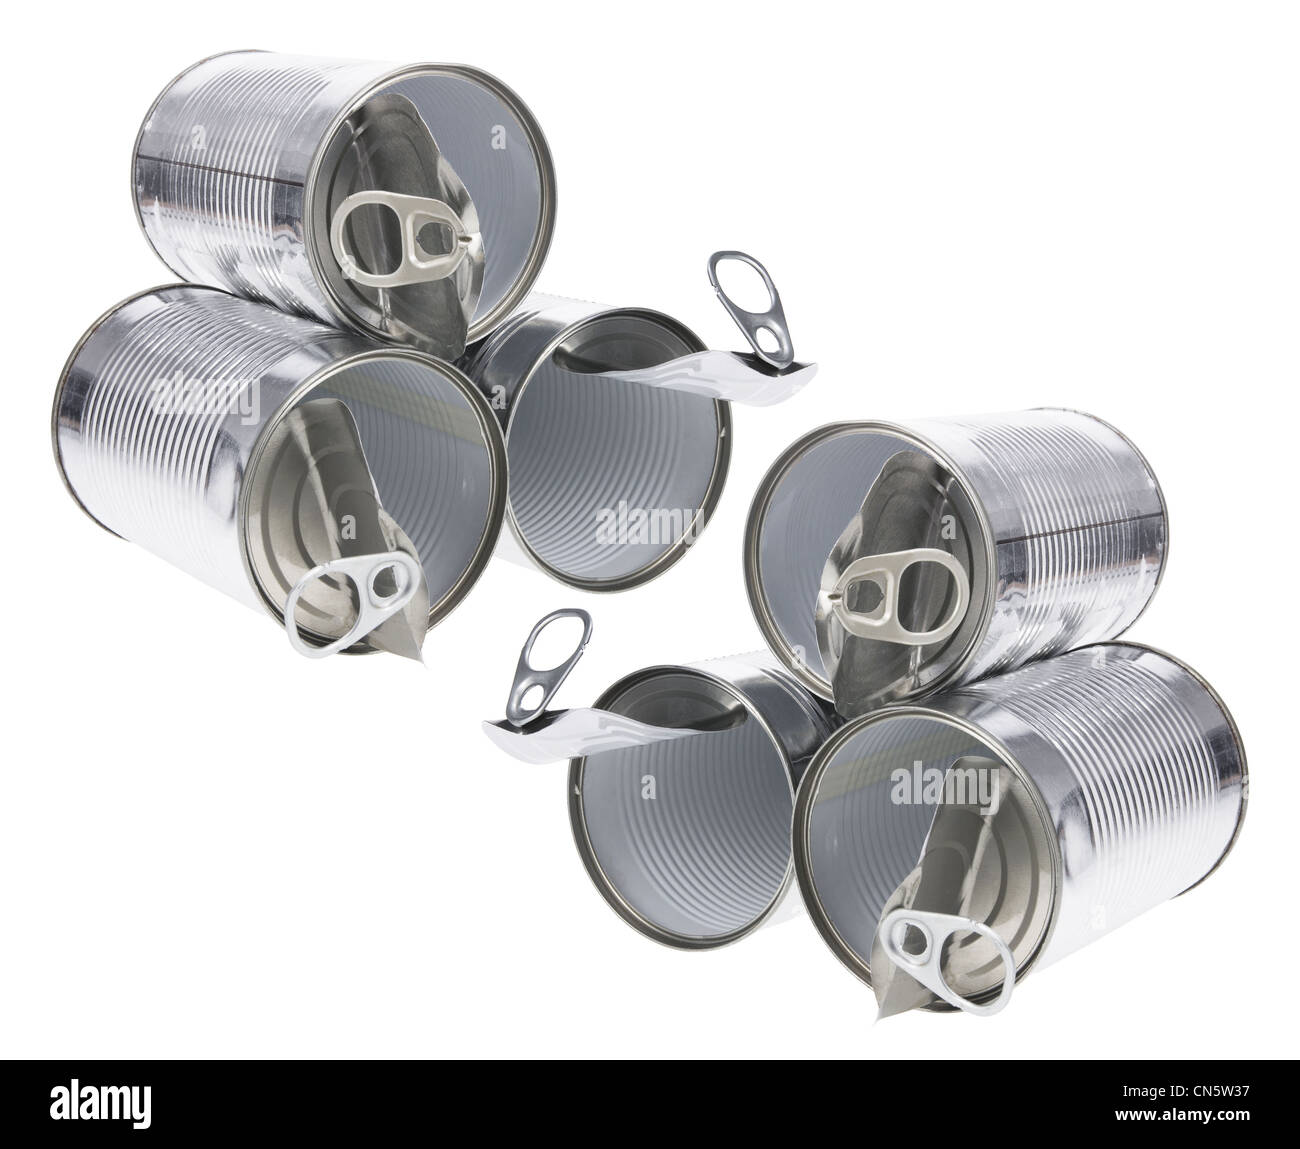 Tin Cans - Stock Image